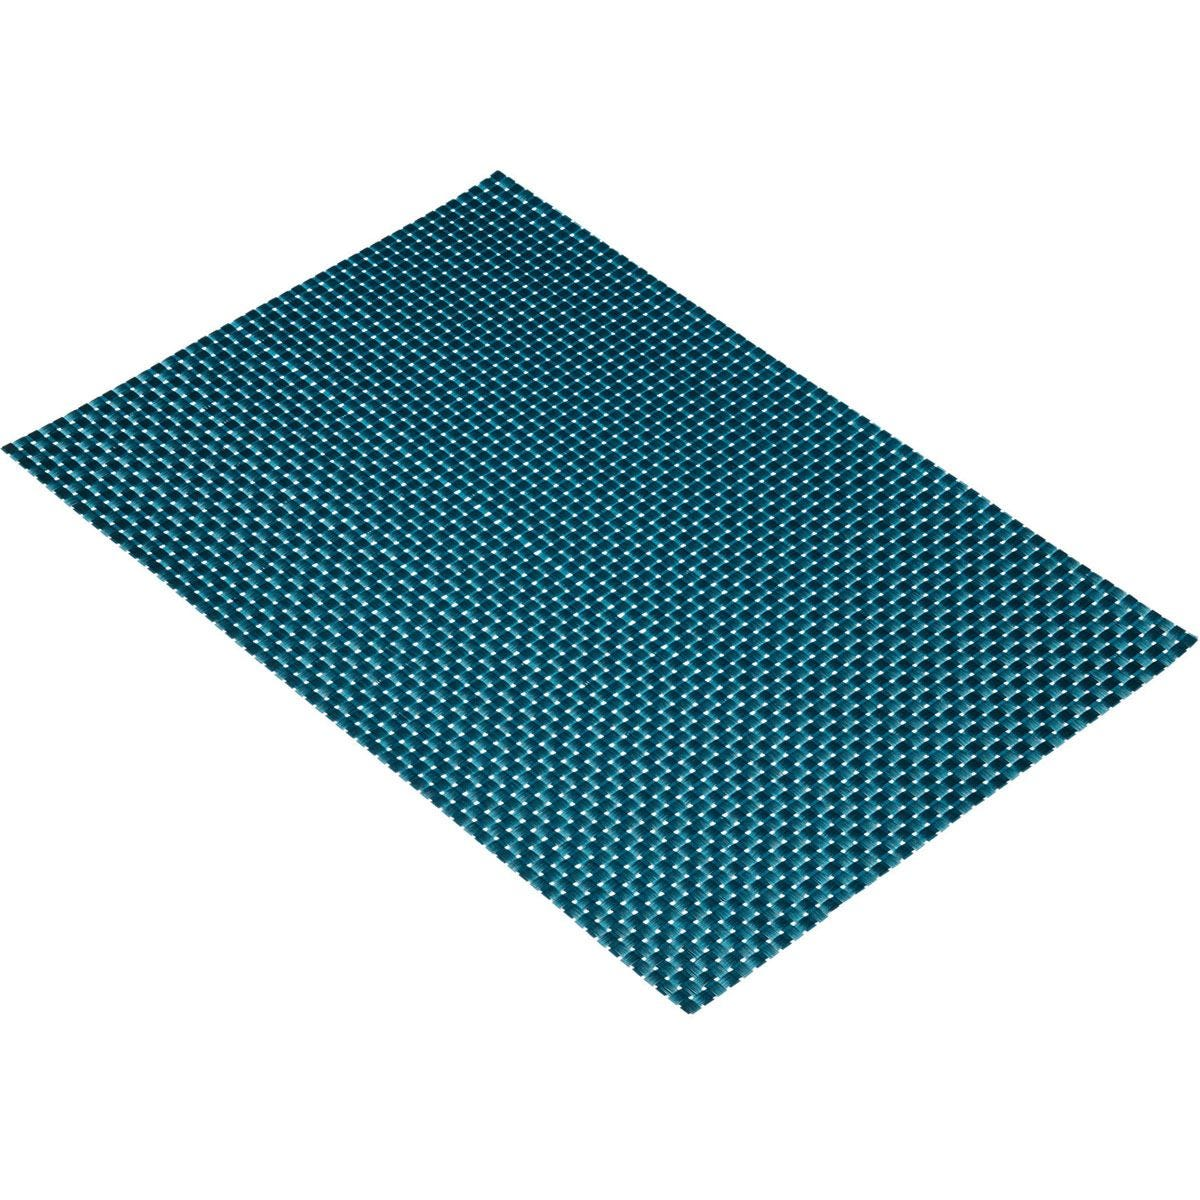 KitchenCraft Woven Weave Placemat - Turquoise